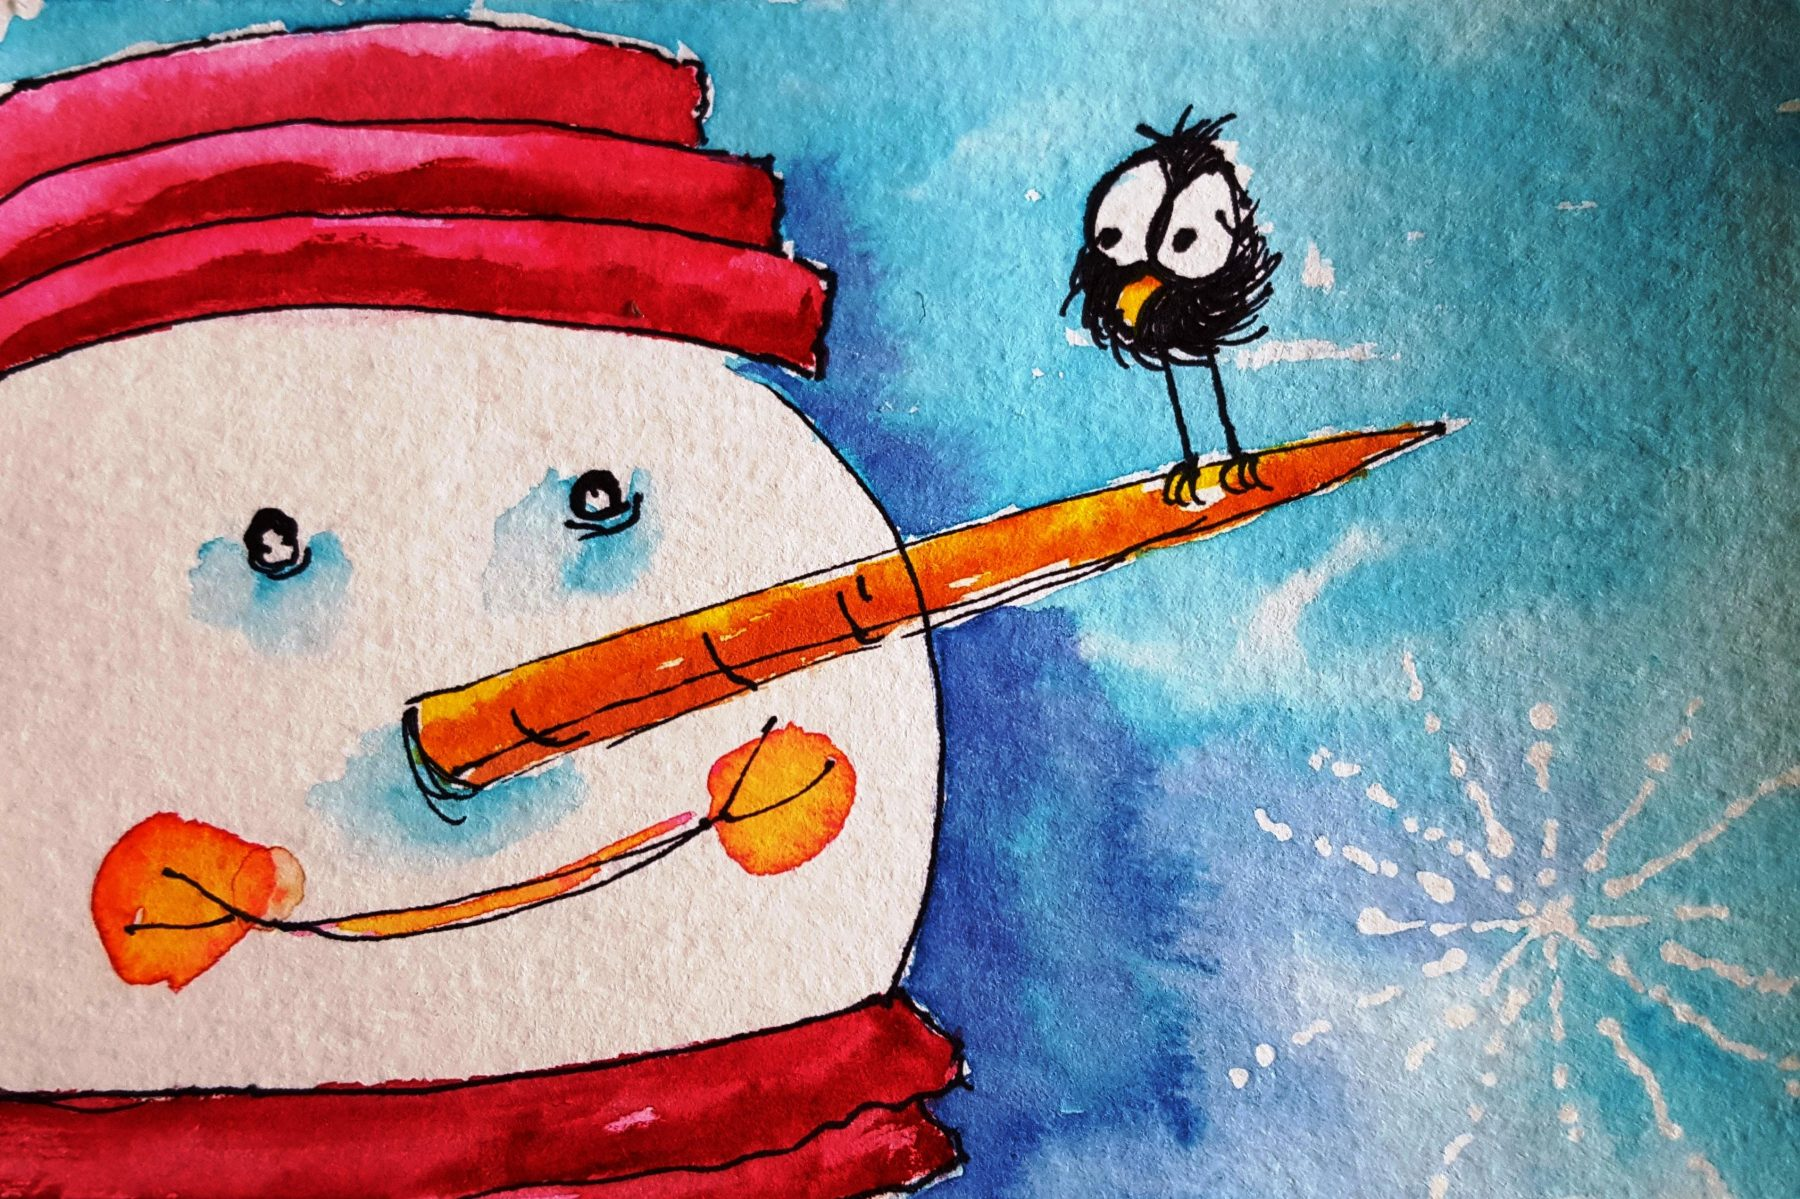 Watercolor Christmas Cards - with Chris Blevins and Suzi Vitulli ...